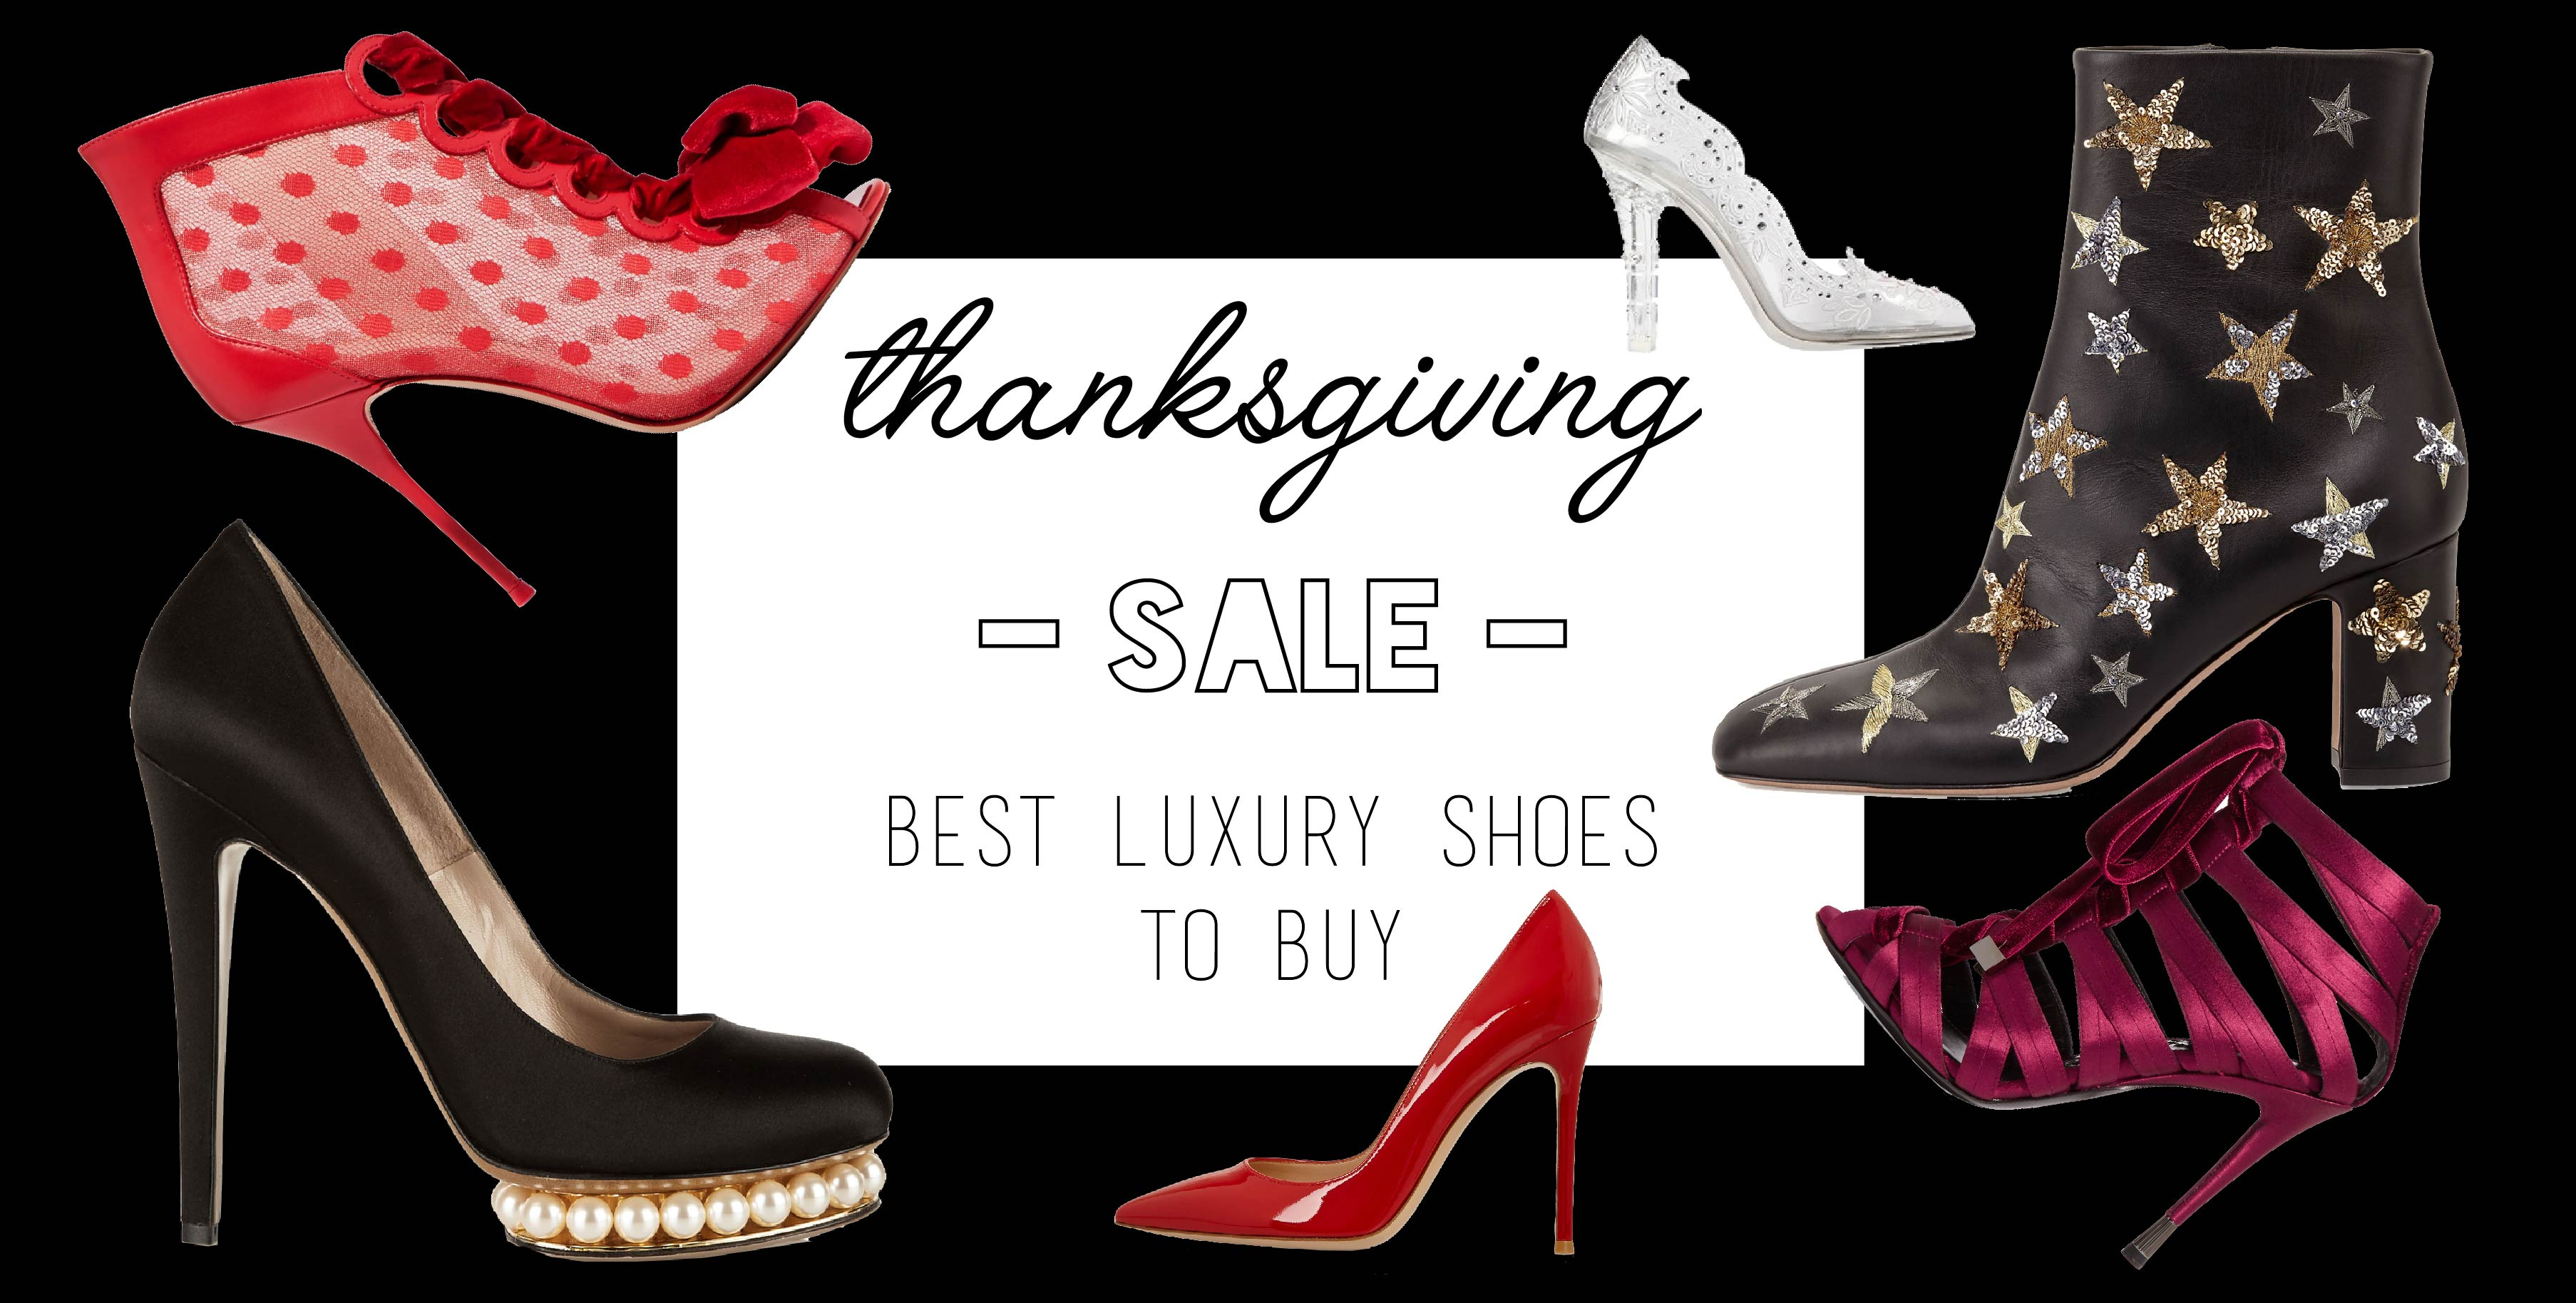 THANKSGIVING SALE BEST LUXURY SHOES TO BUY